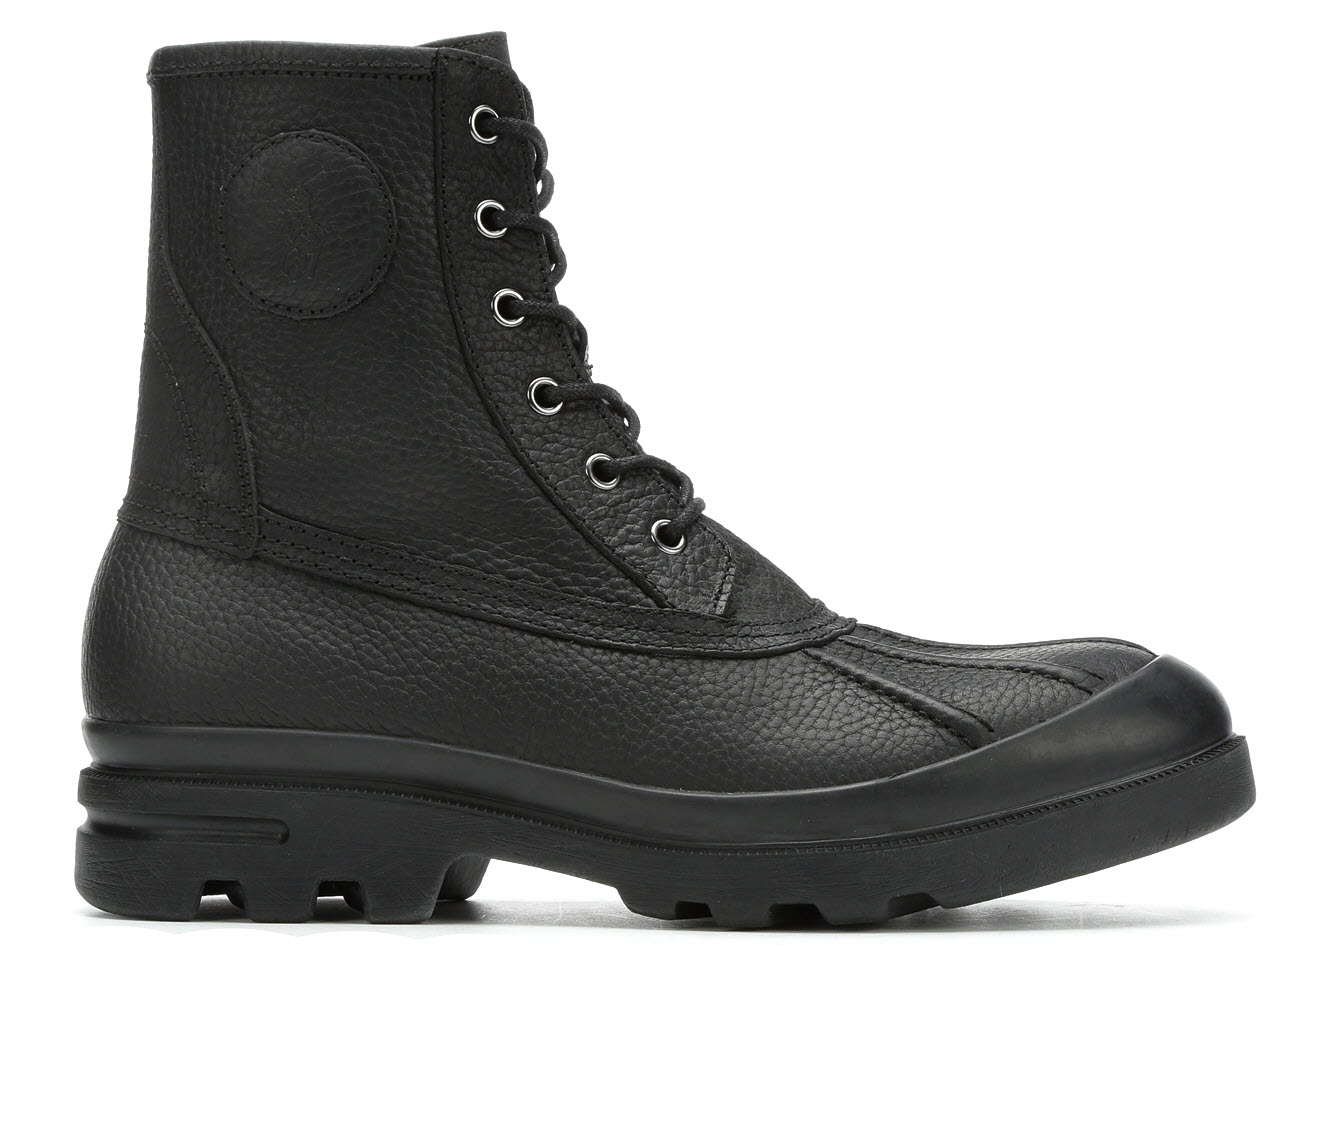 Polo Udel Men's Boots (Black Leather)